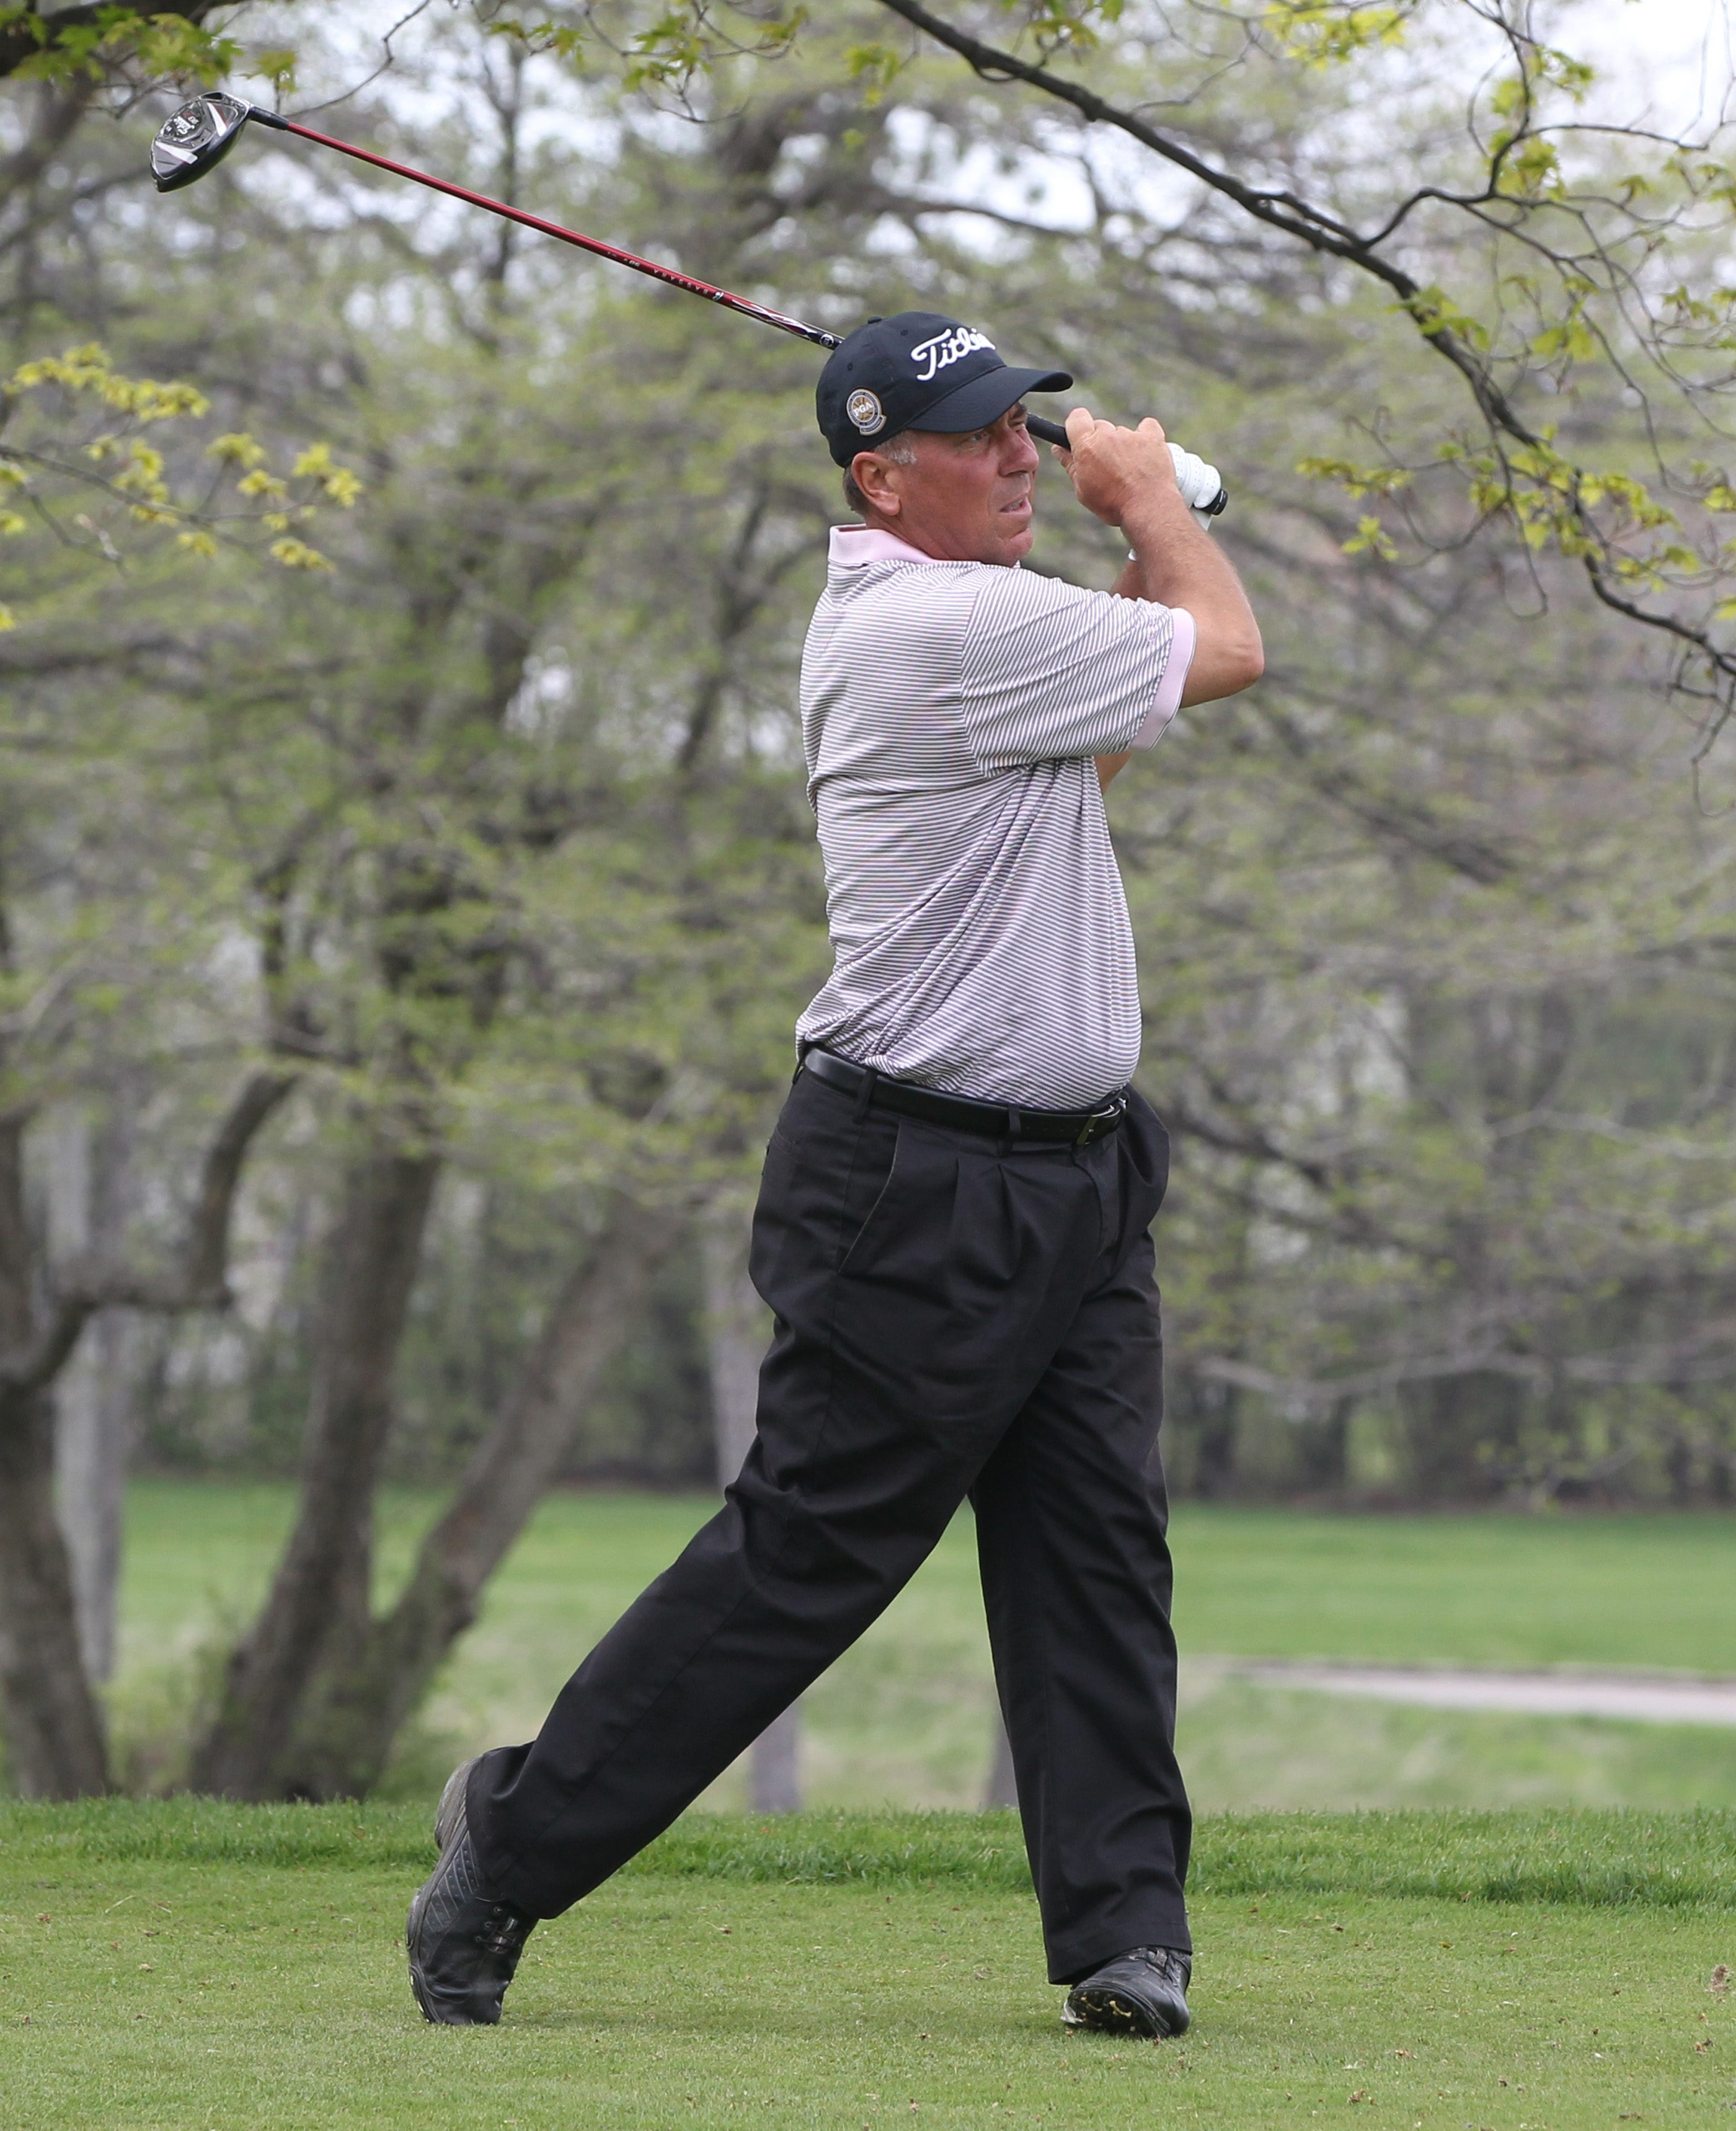 Rob Horak carded a 4-under 68 to win the Western New York Open at Wanakah Country Club.